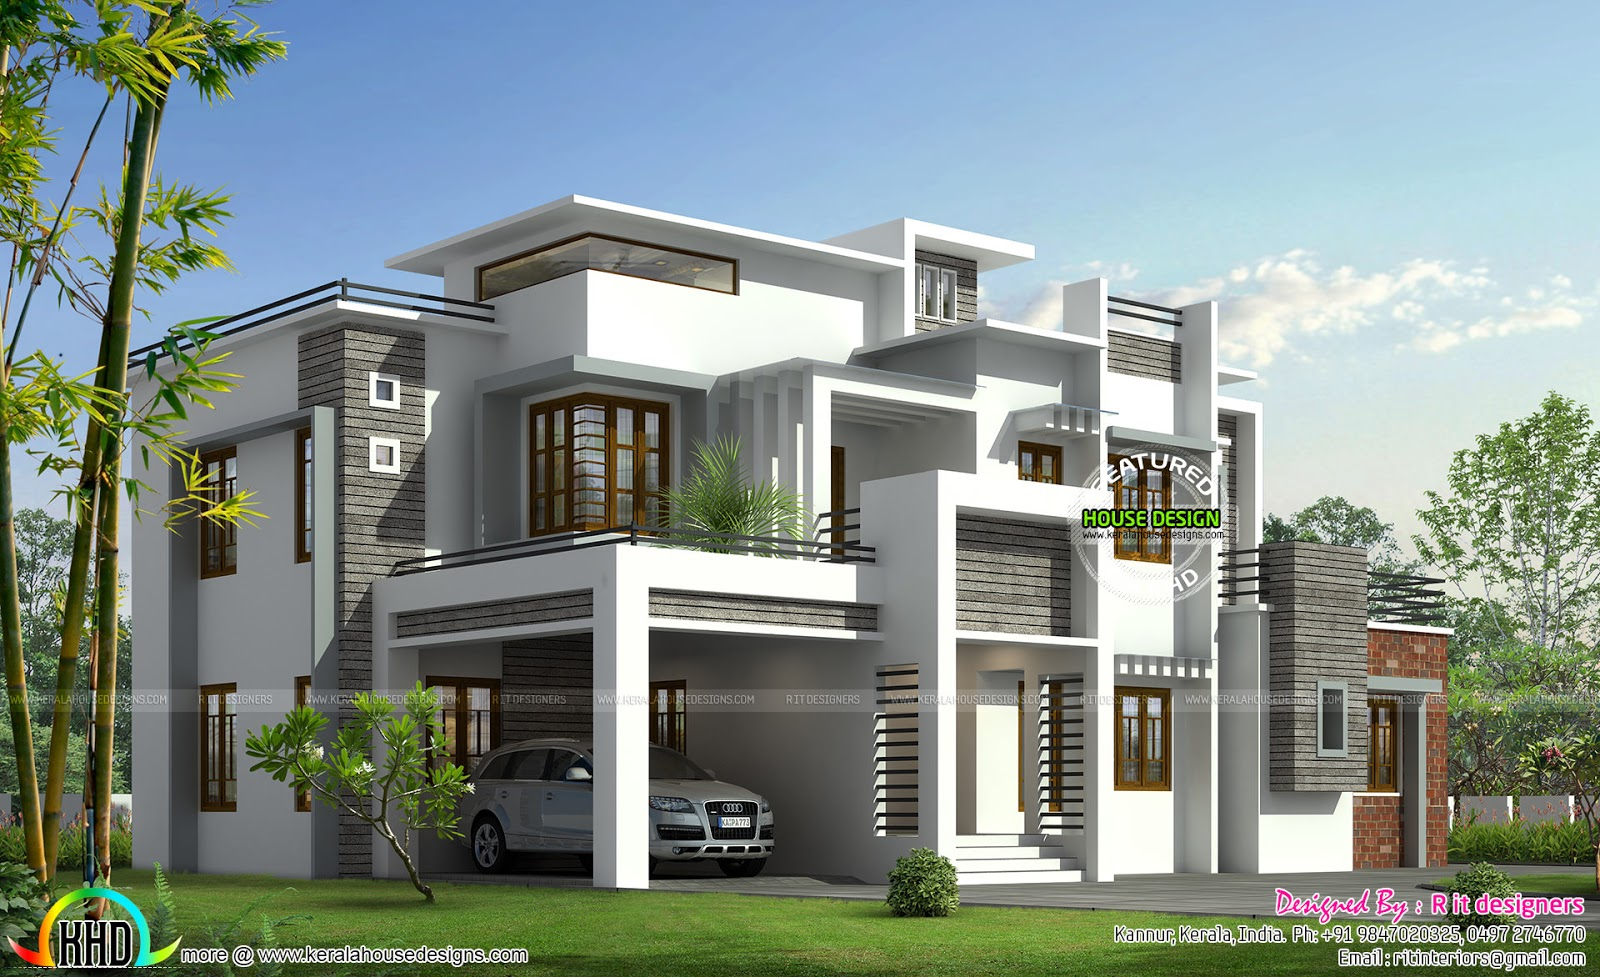 Box model contemporary house kerala home design and for Modern tower house designs